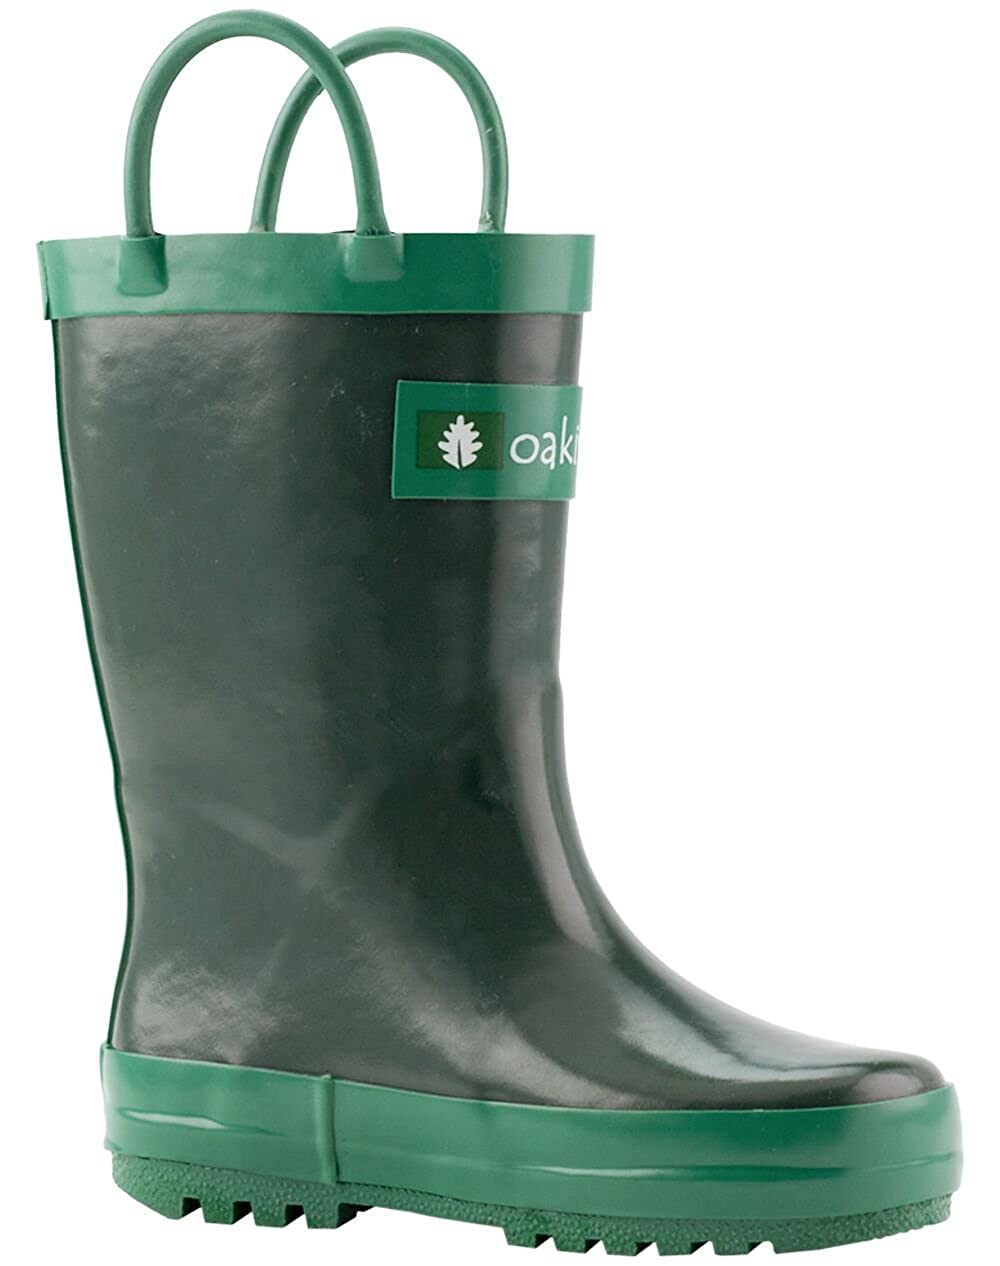 bd5912c41c5ac OAKI Kids Waterproof Rubber Rain Boots Easy-On Handles - sumifin.com